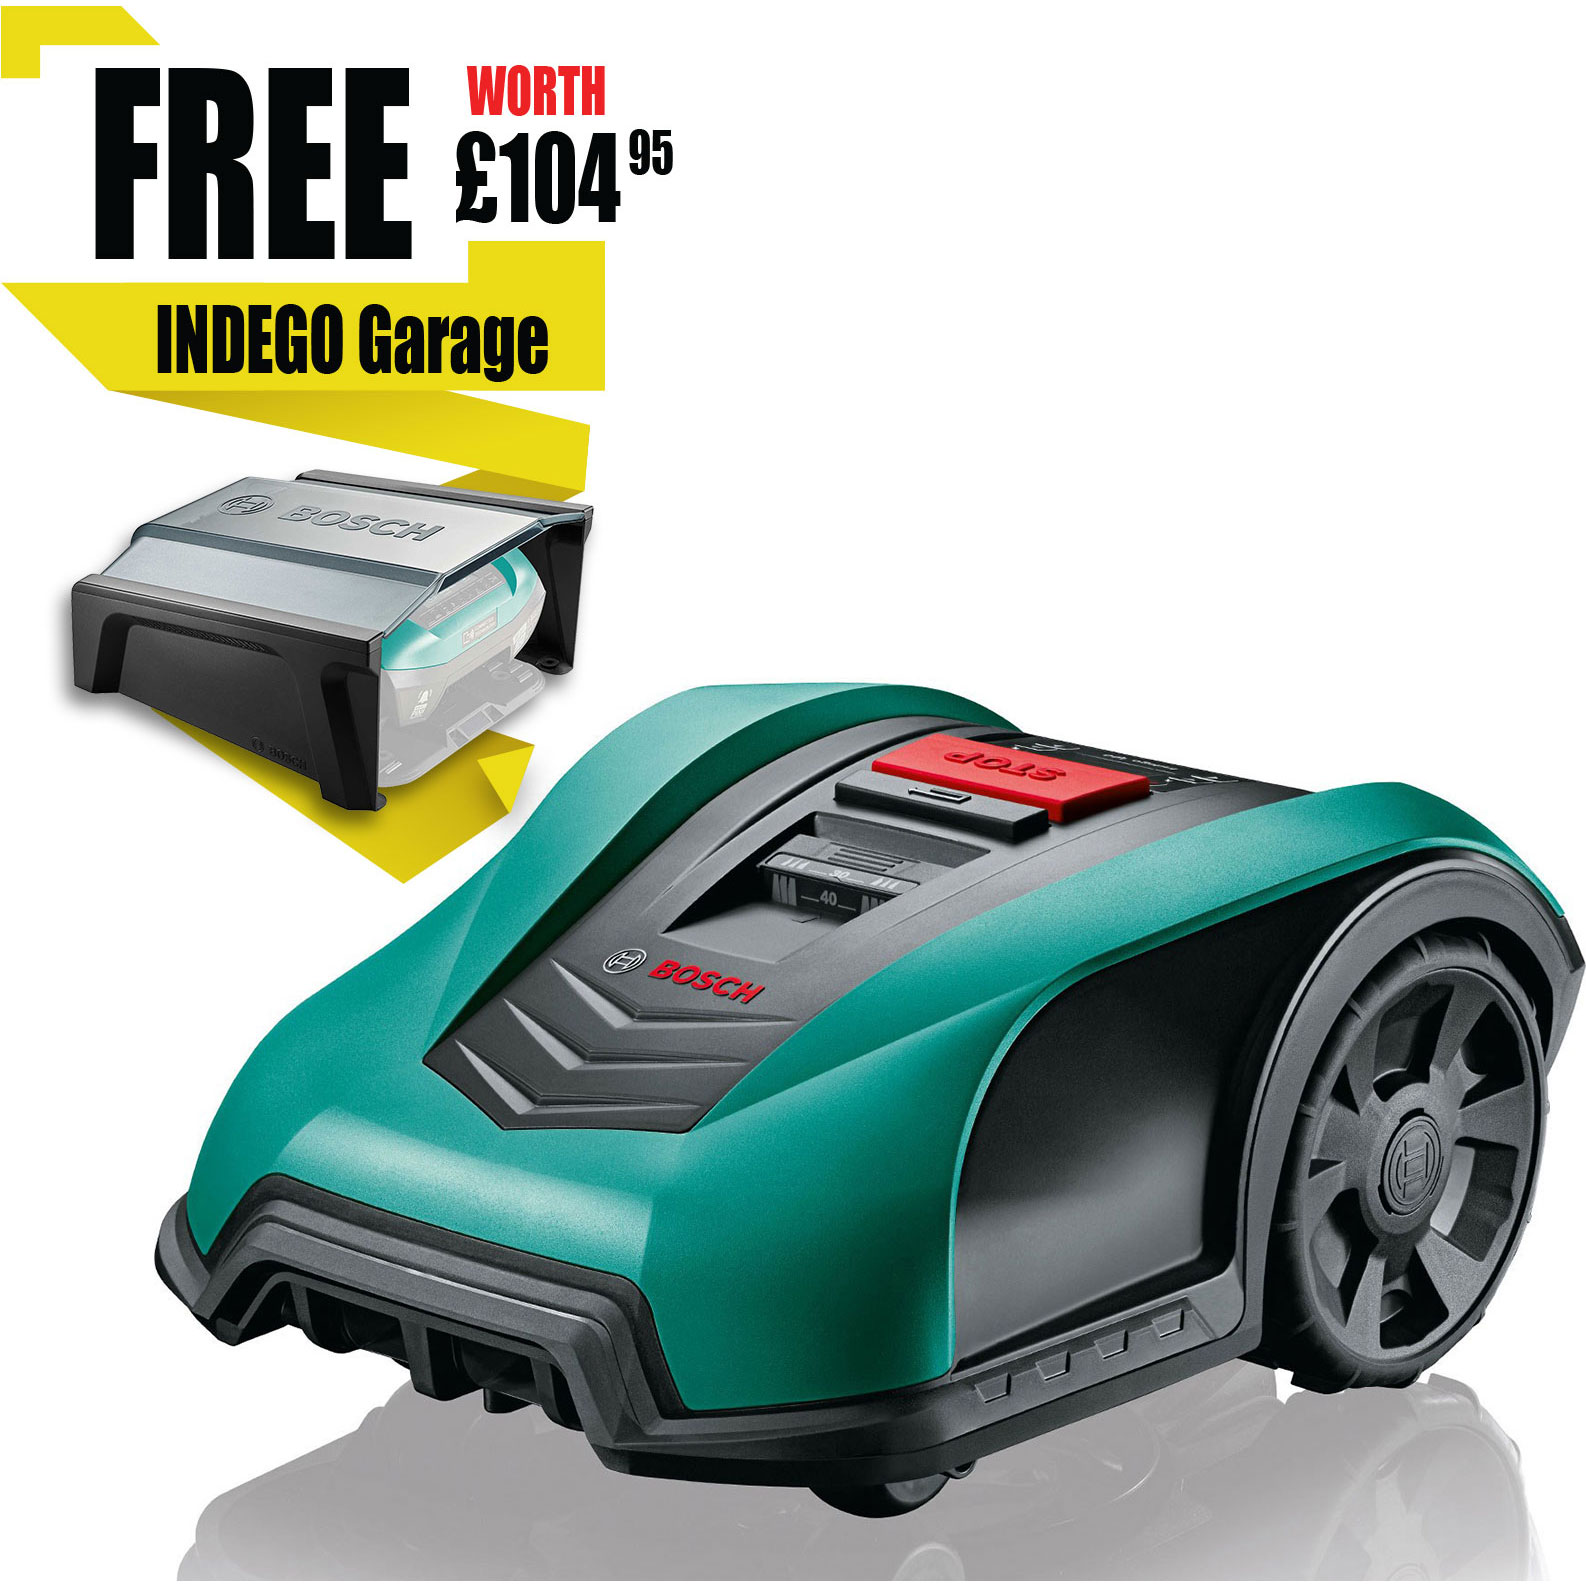 Image of Bosch INDEGO 400 CONNECT 18v Cordless Robotic Lawnmower 190mm 1 x 2.5ah Integrated Li-ion Charger